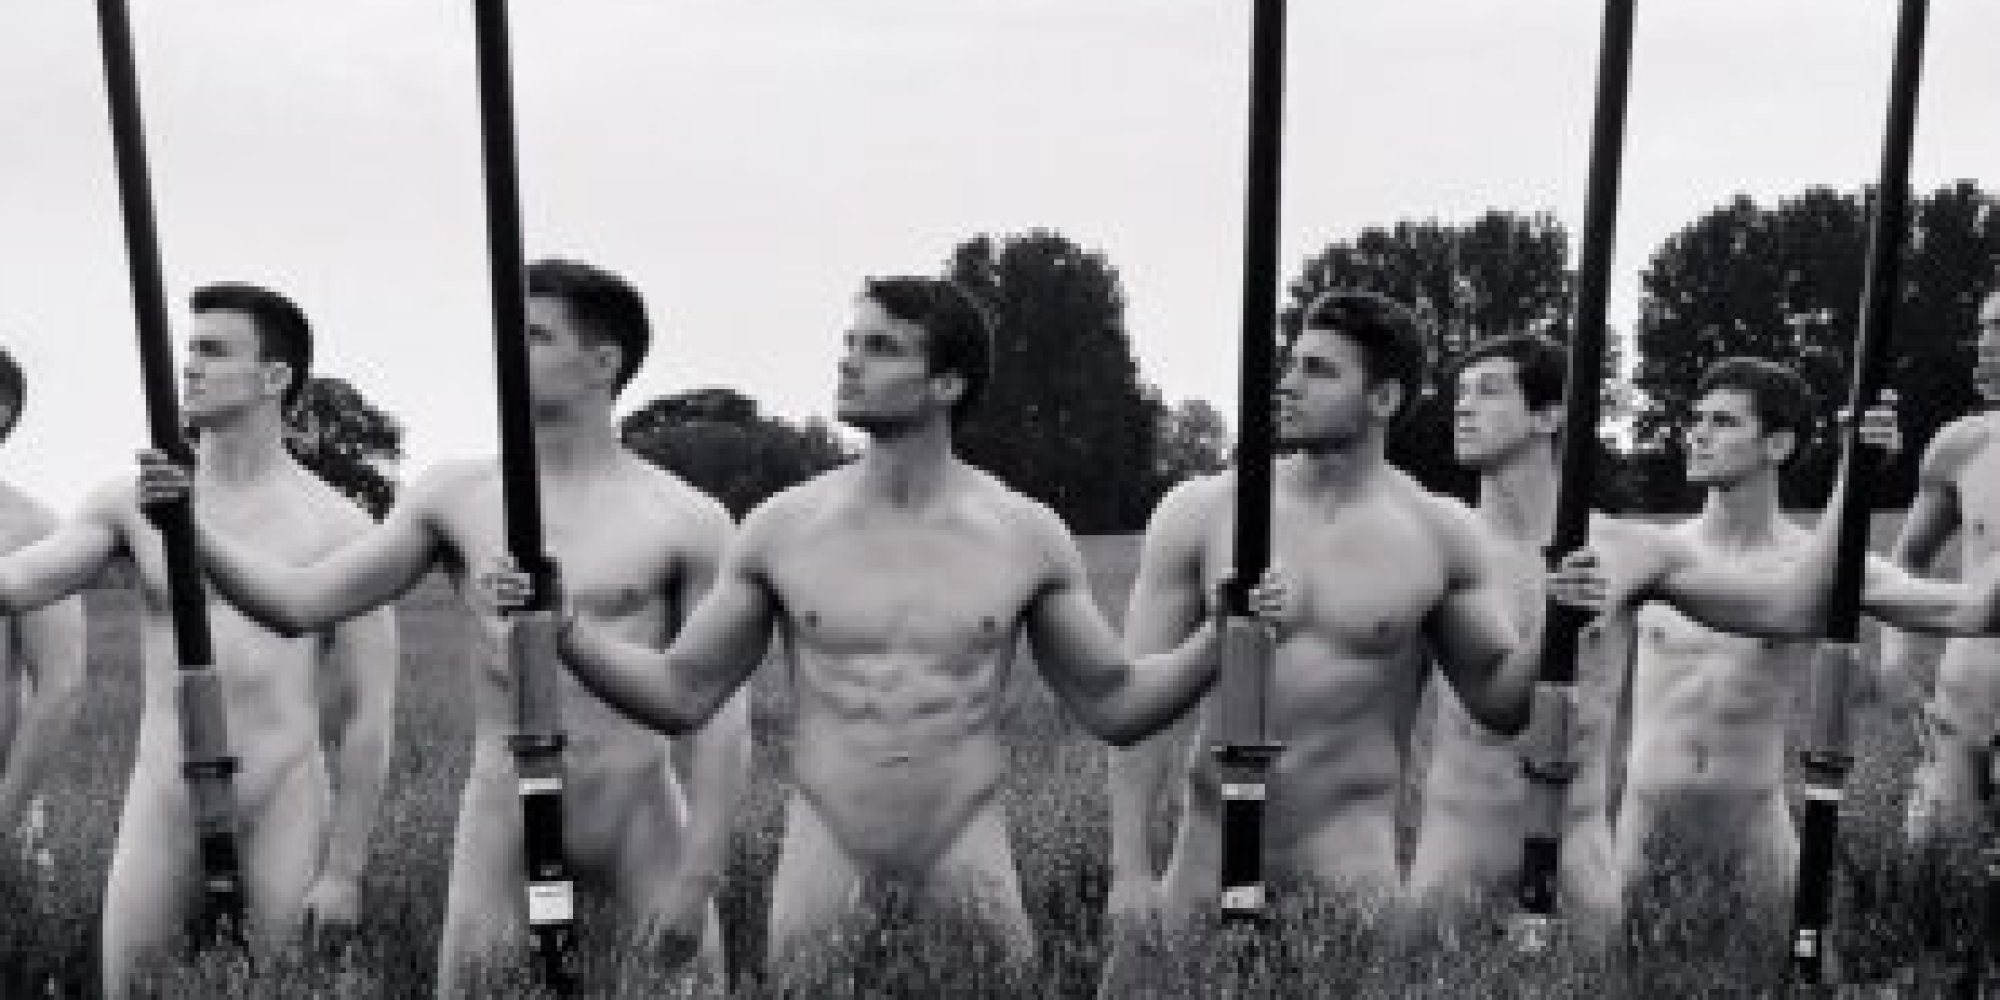 from Dwayne nude gay rowers